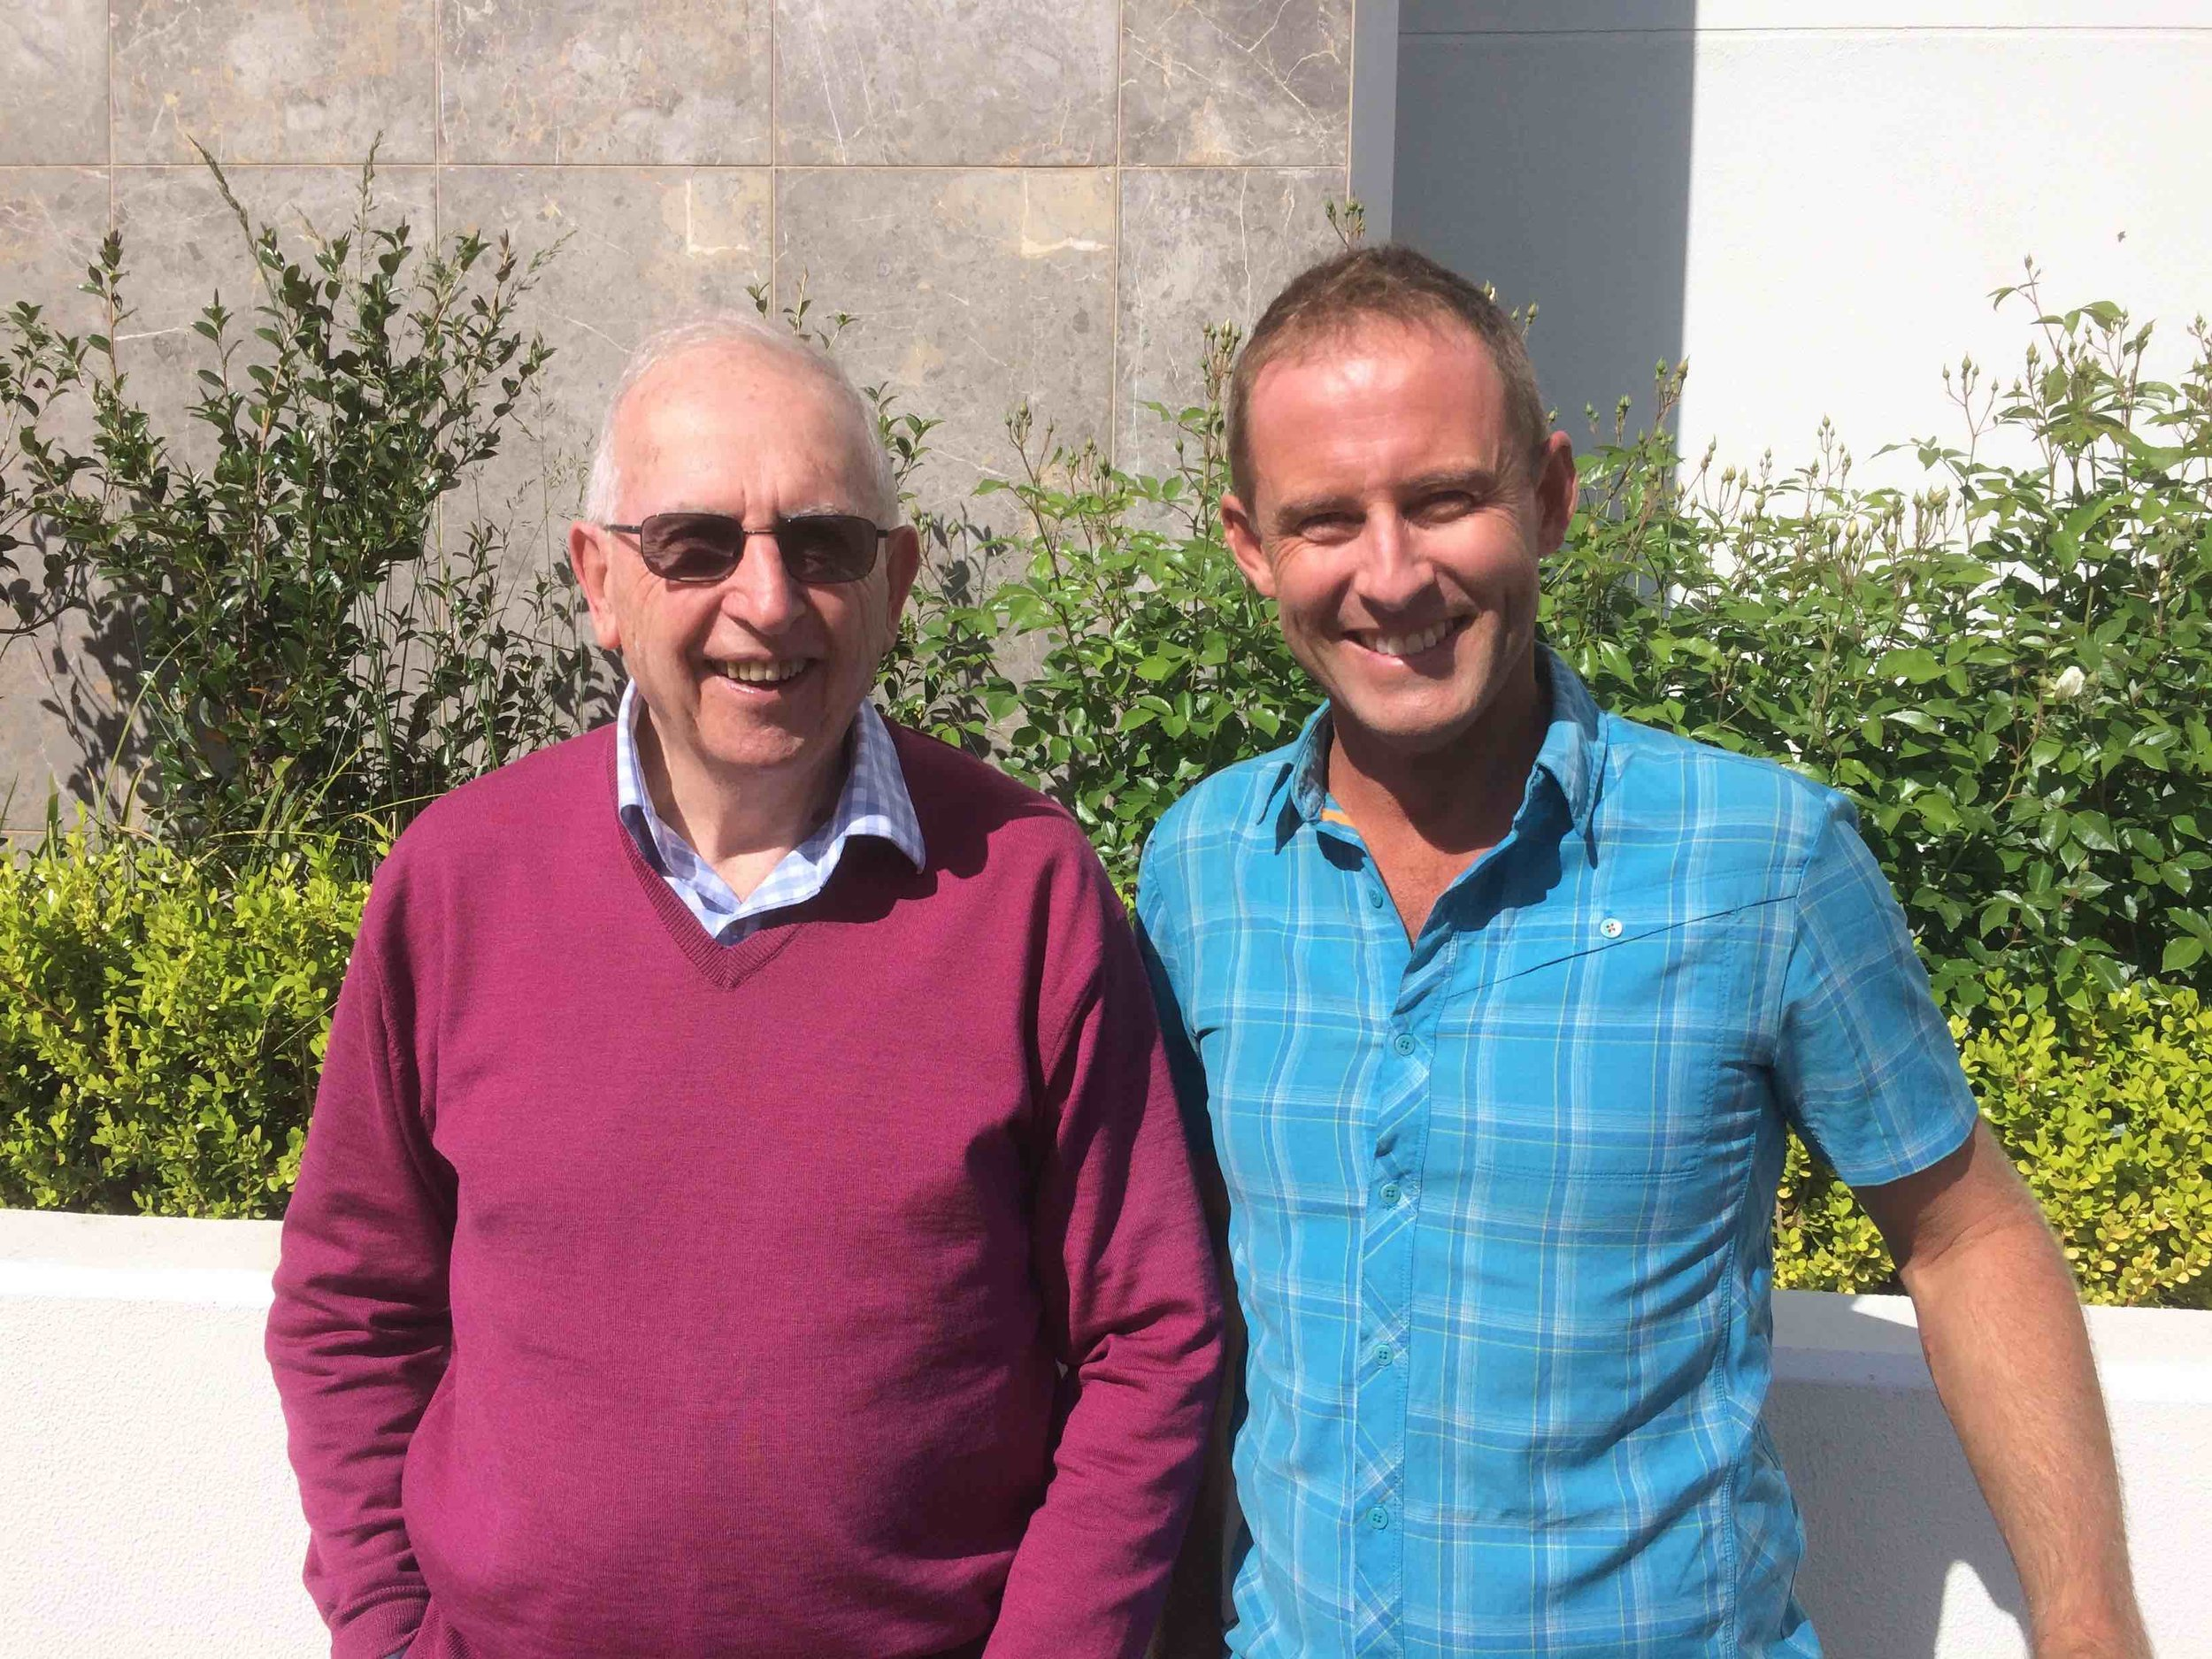 Hugh Mackay and Anthony James at Hugh's home in Canberra. Pic: Olivia Cheng.